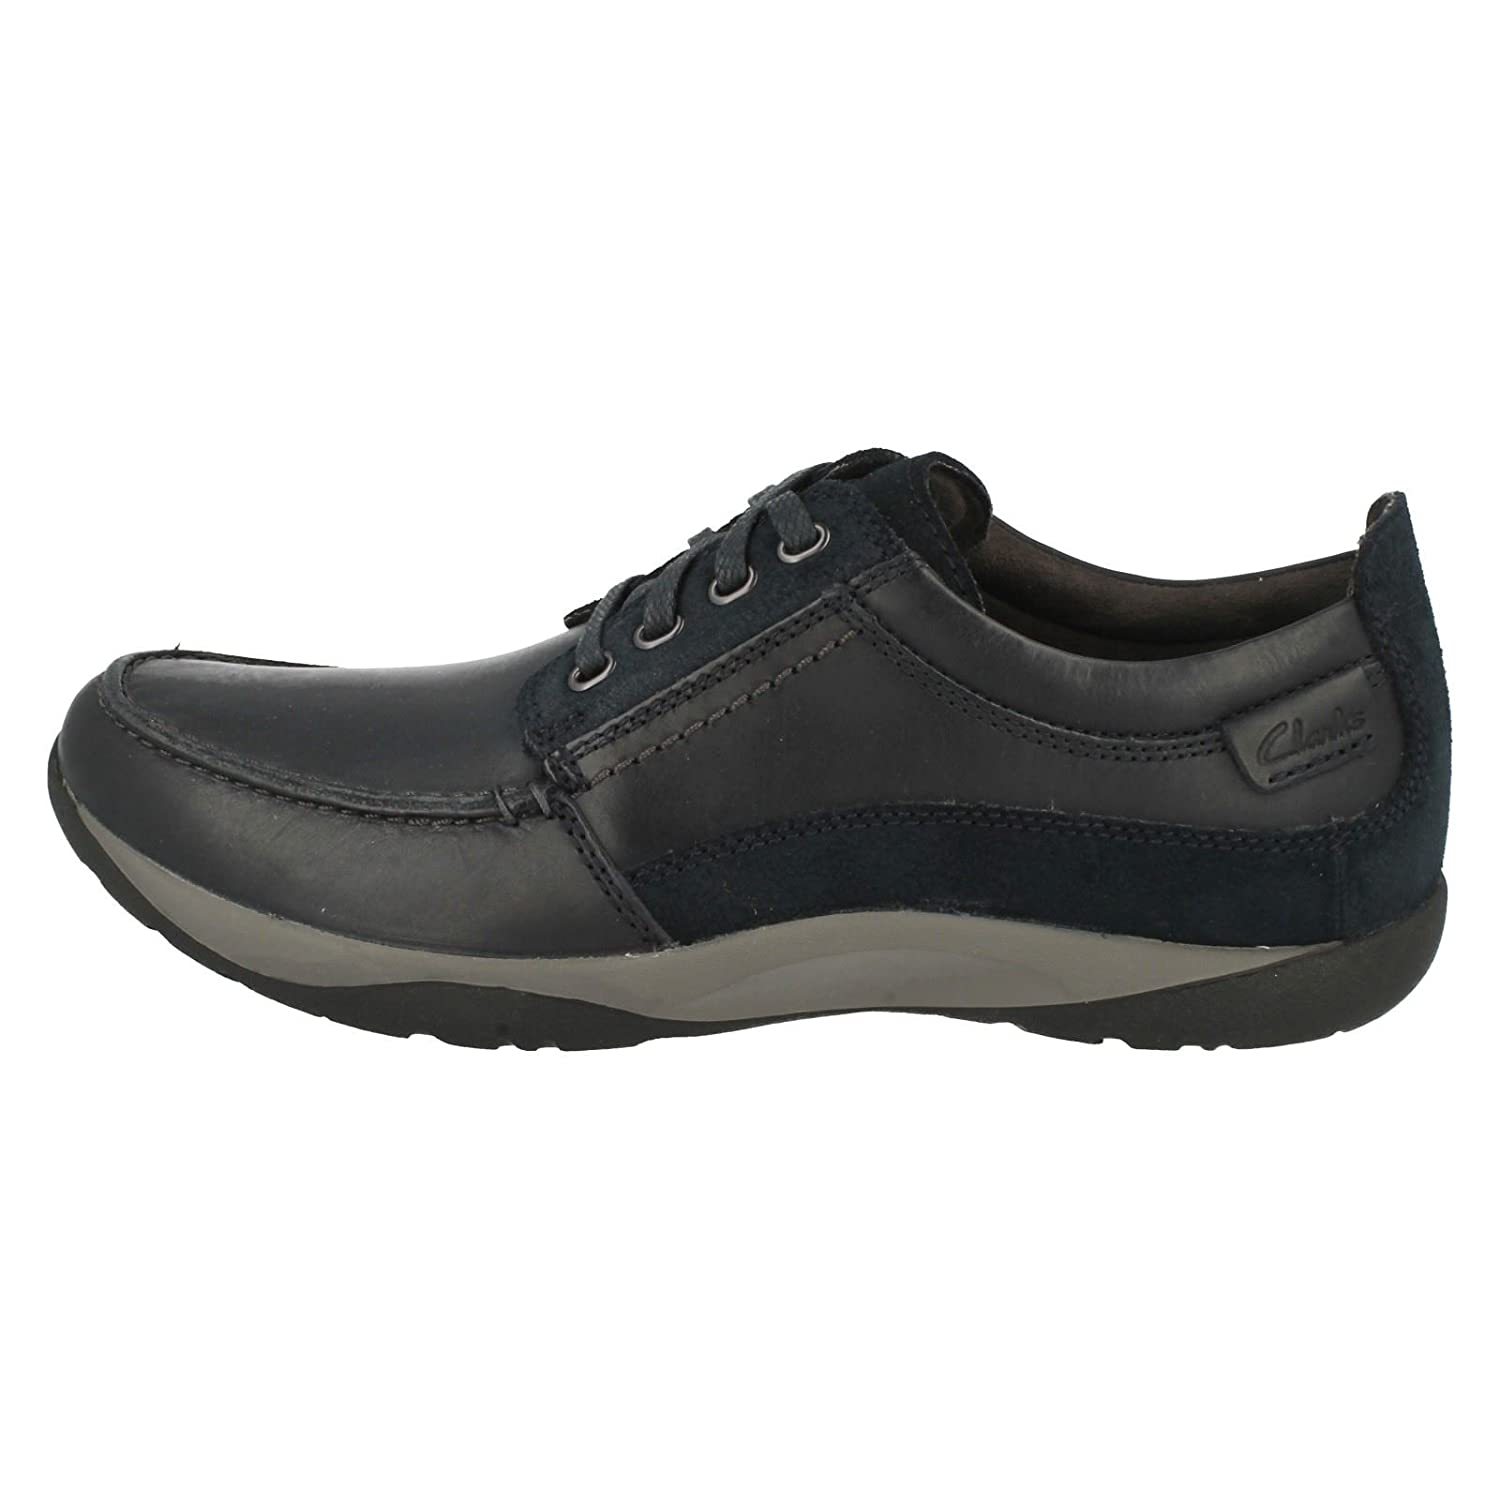 Clarks Route Walk Leather Shoes In Brown  Amazon.co.uk  Shoes   Bags 3bc65cc1f